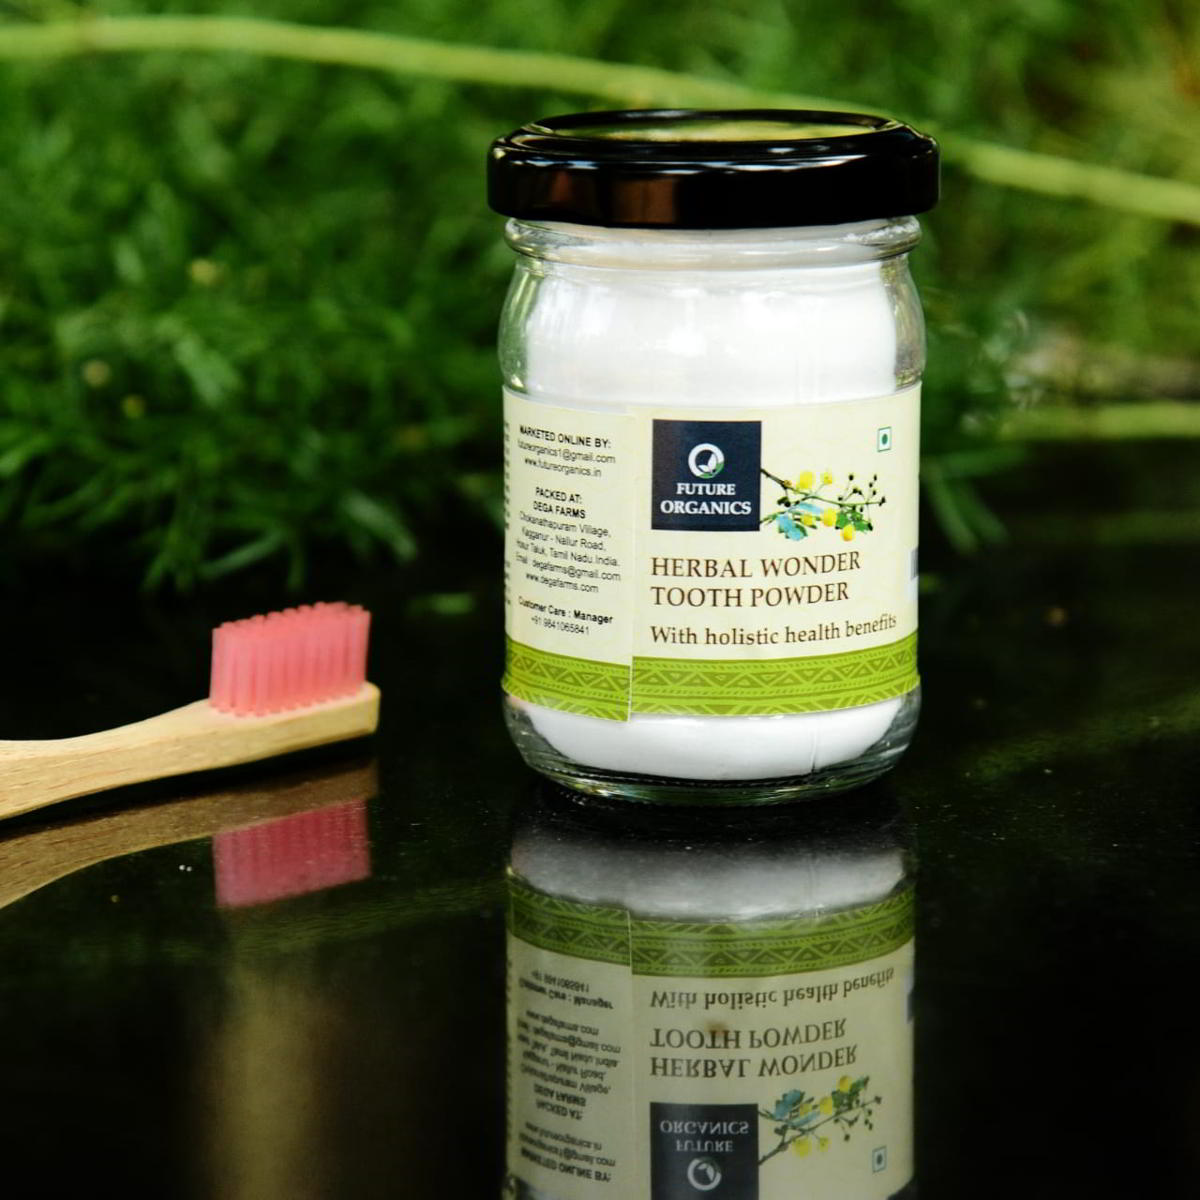 Herbal Wonder Tooth Powder